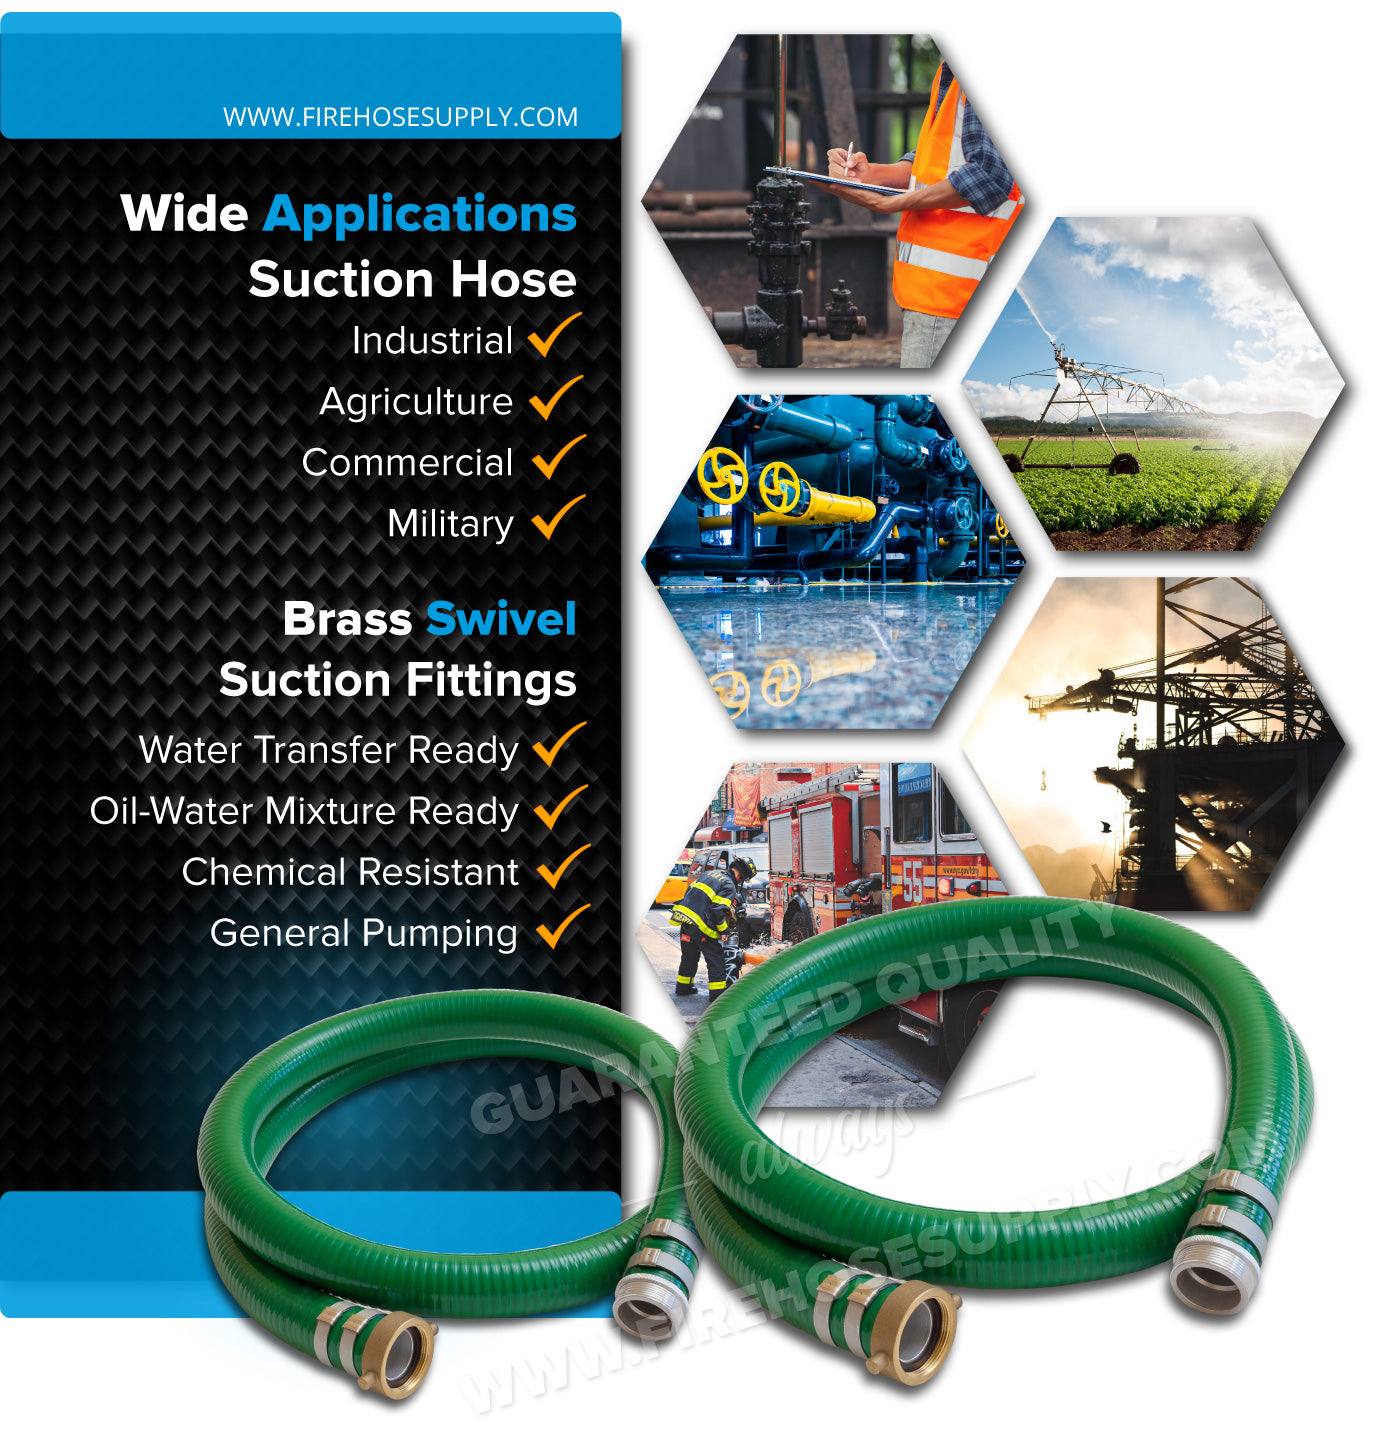 6 Inch Threaded Female x Male Green Suction Hose PVC Materials